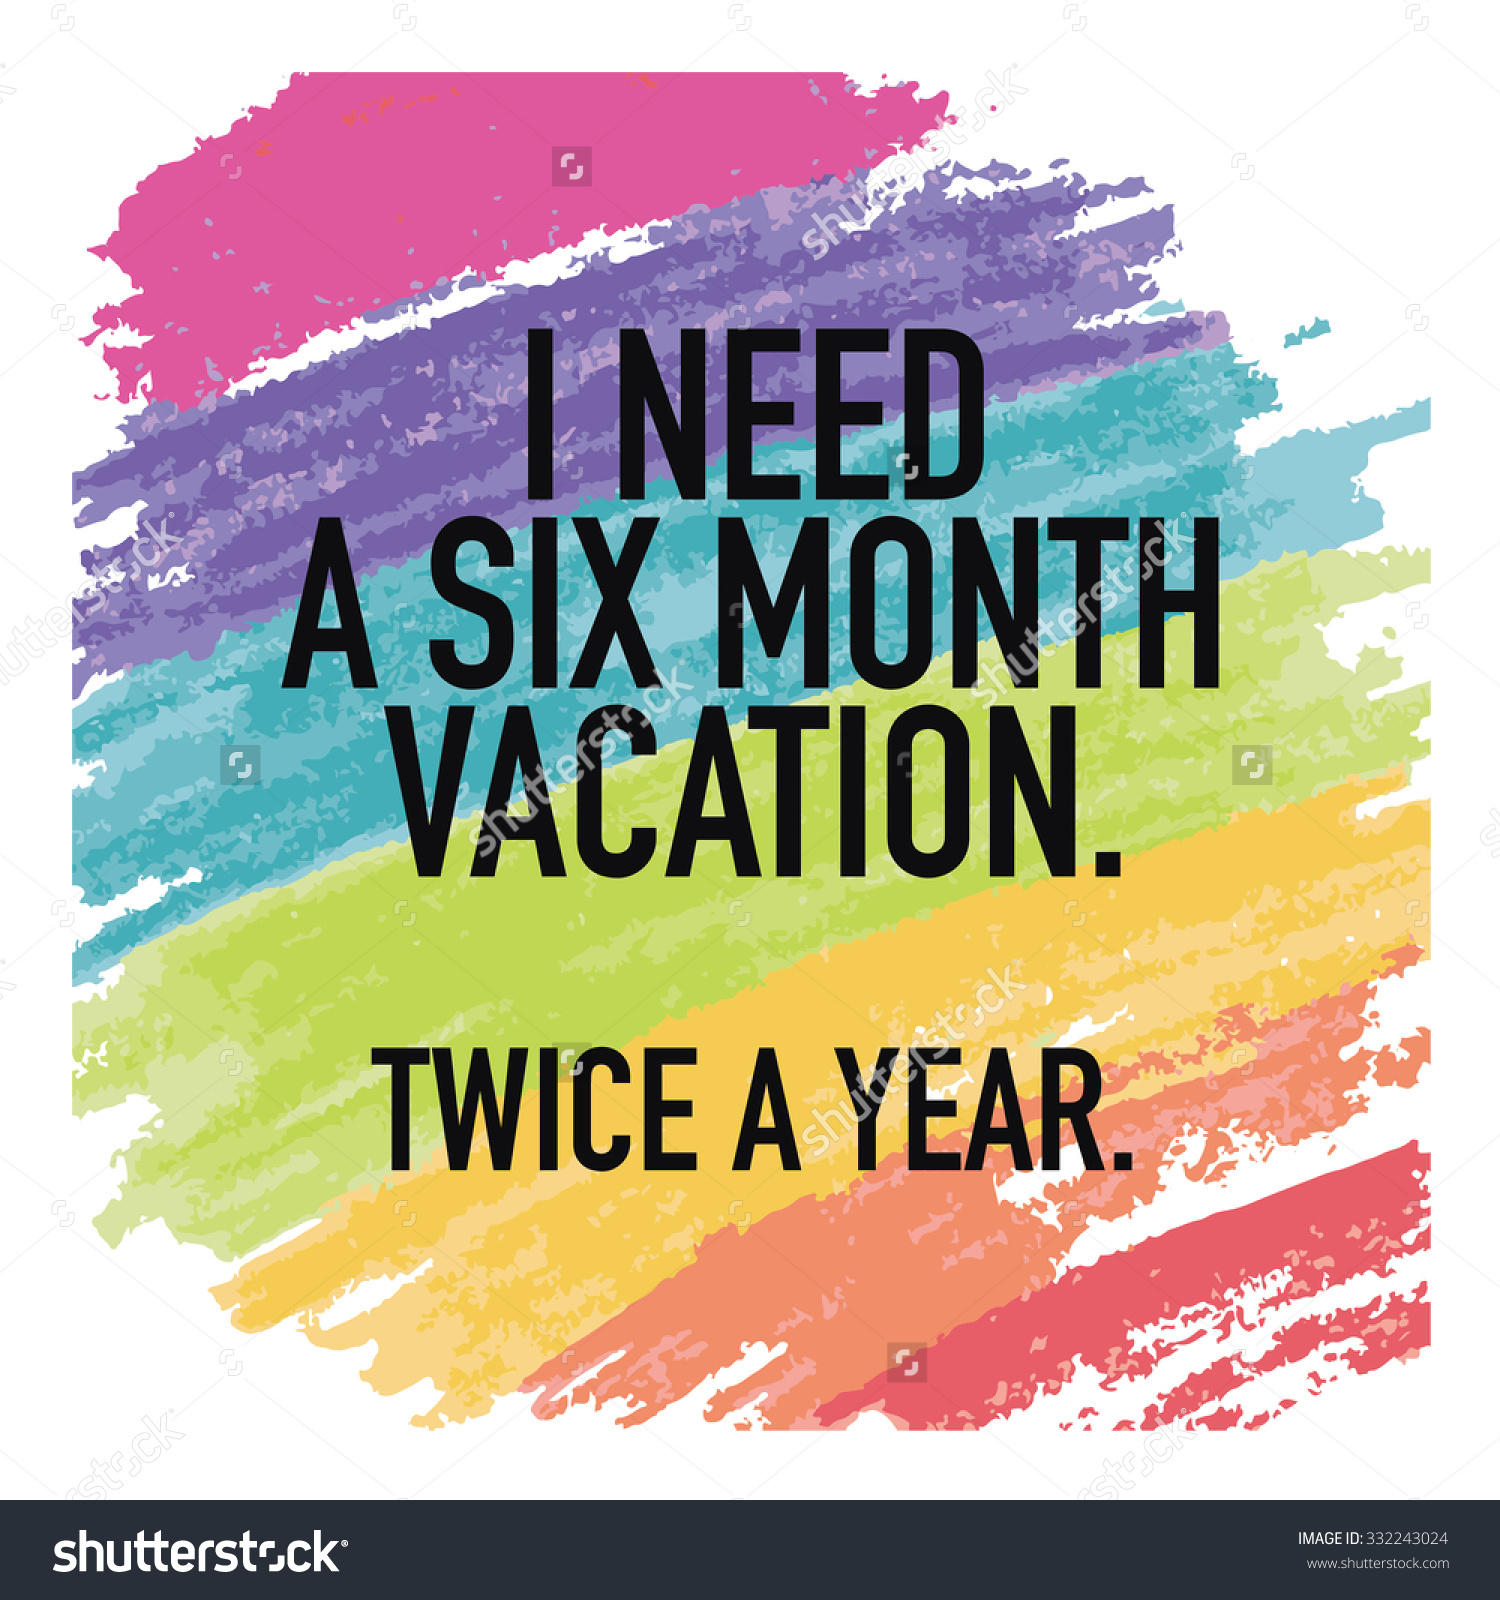 Quotes About Need A Vacation 59 Quotes